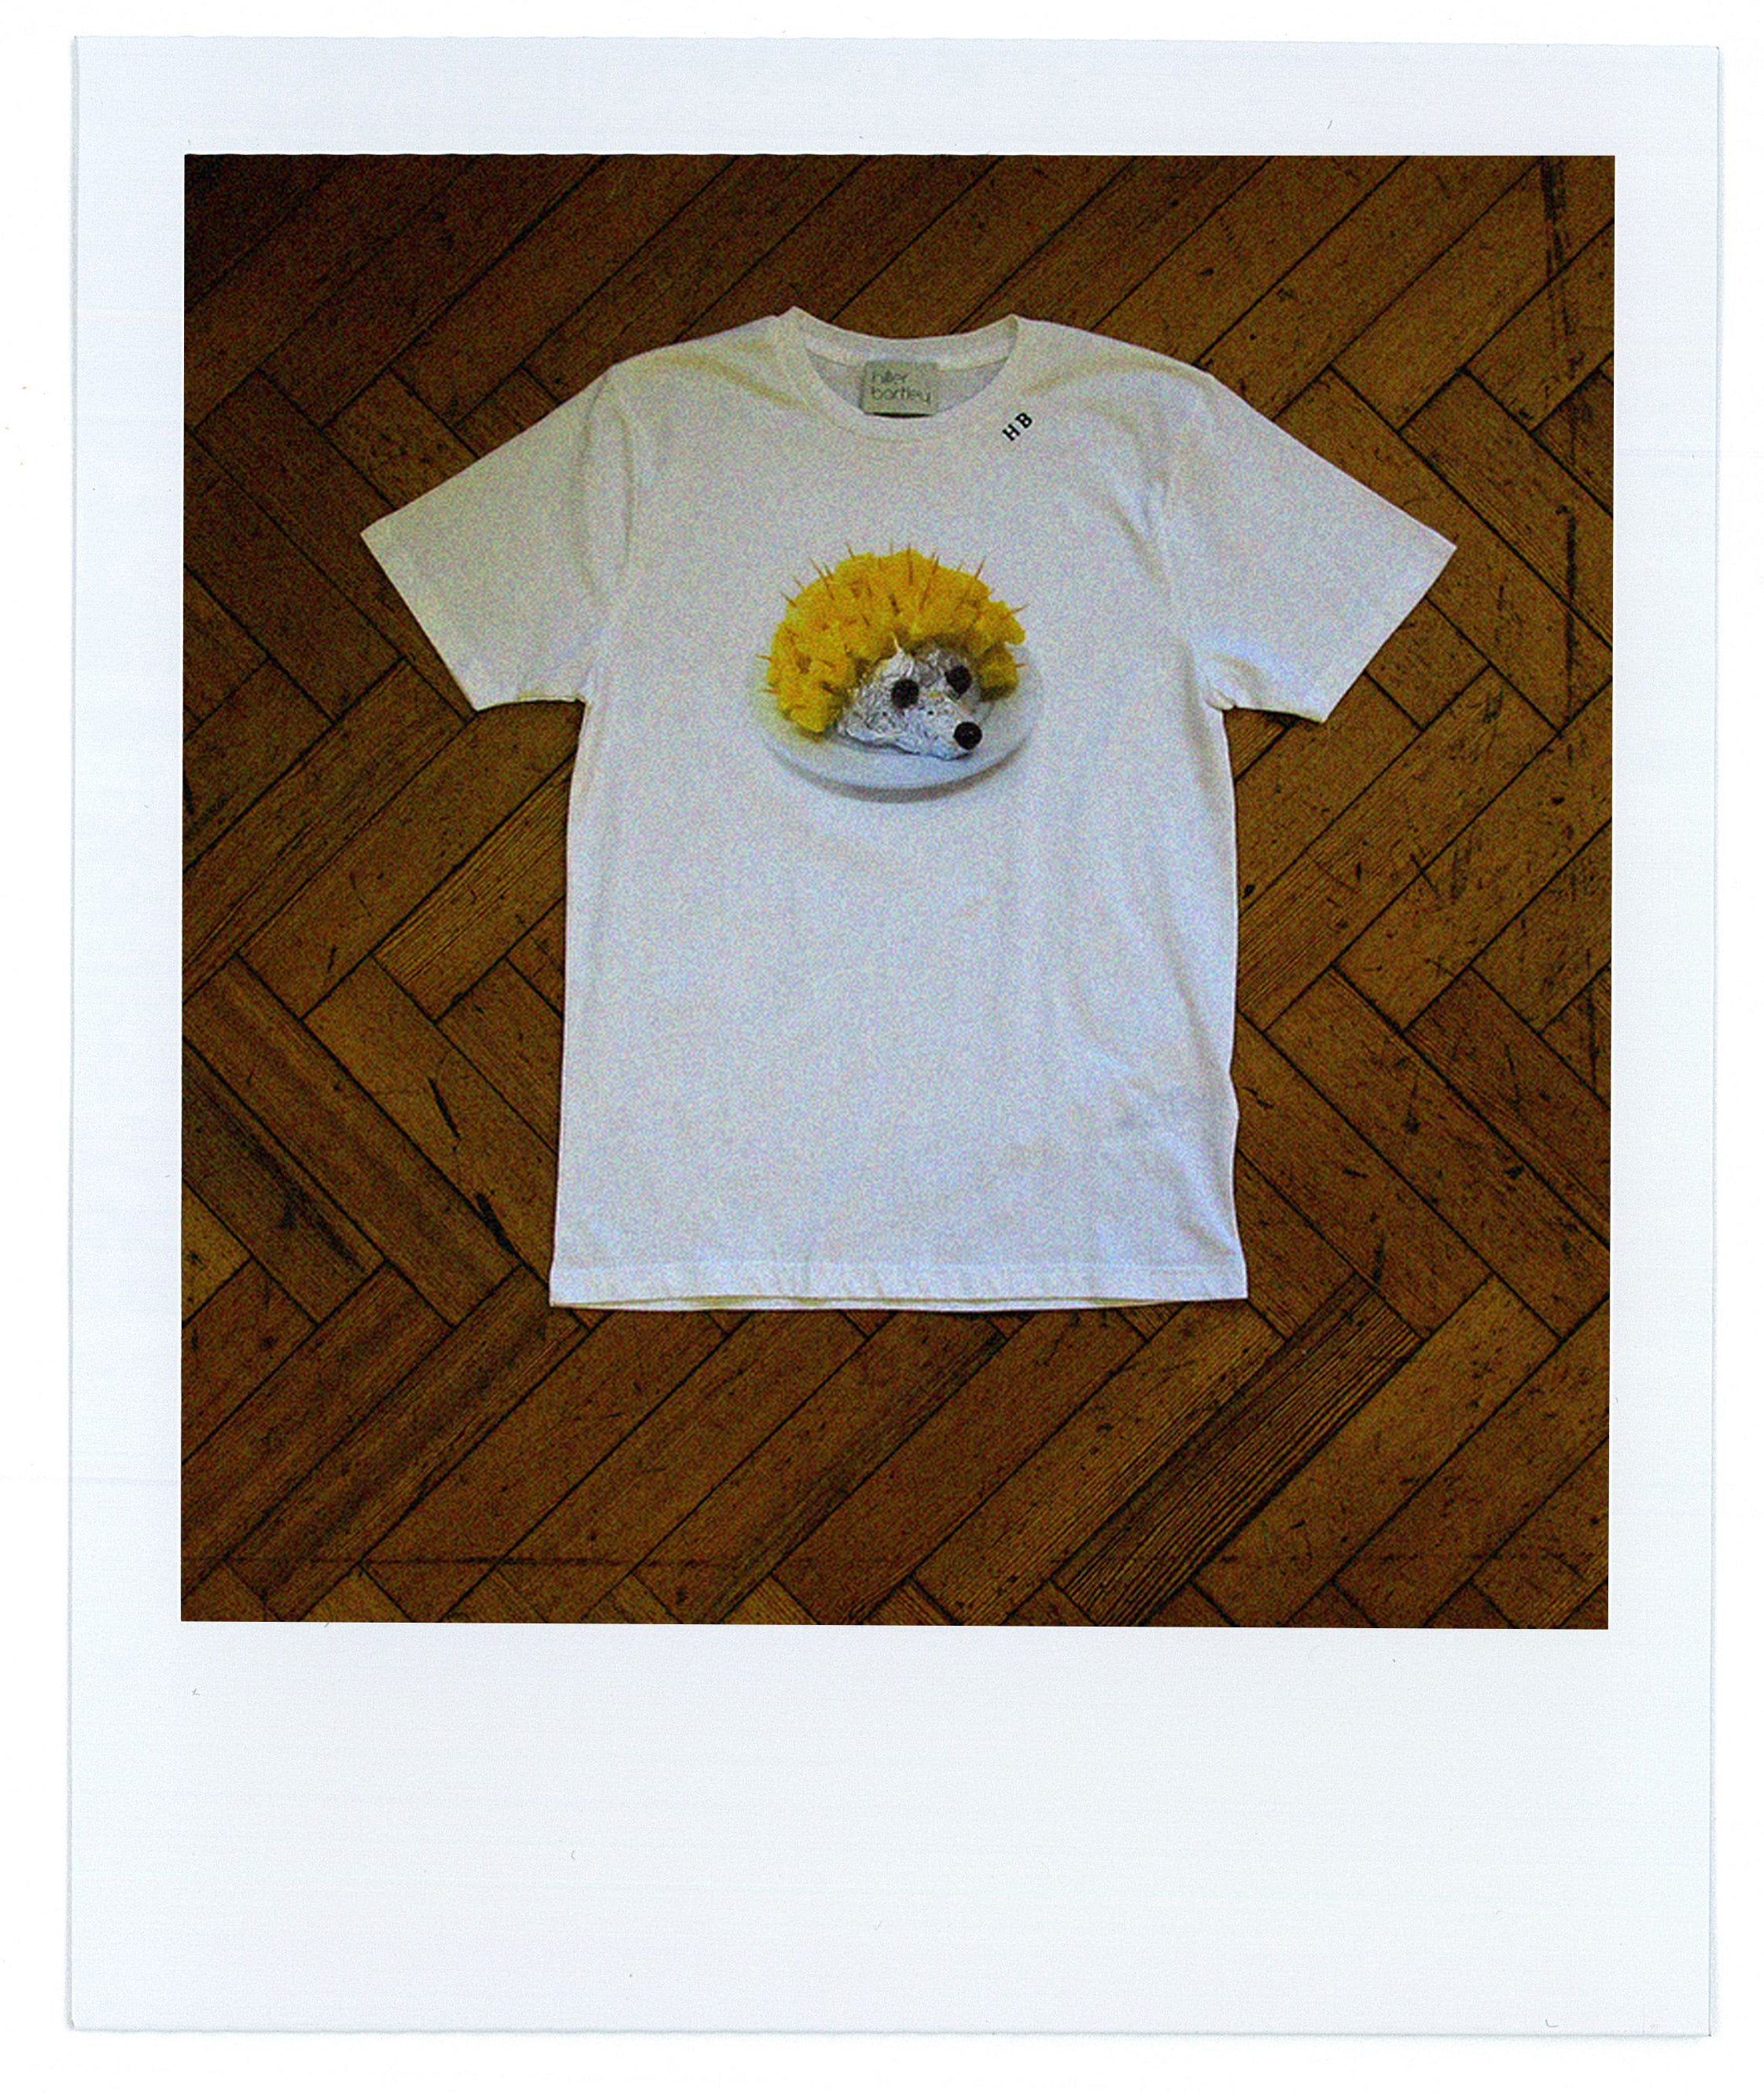 CHEESE AND PINEAPPLE HEDGEHOG T-SHIRT